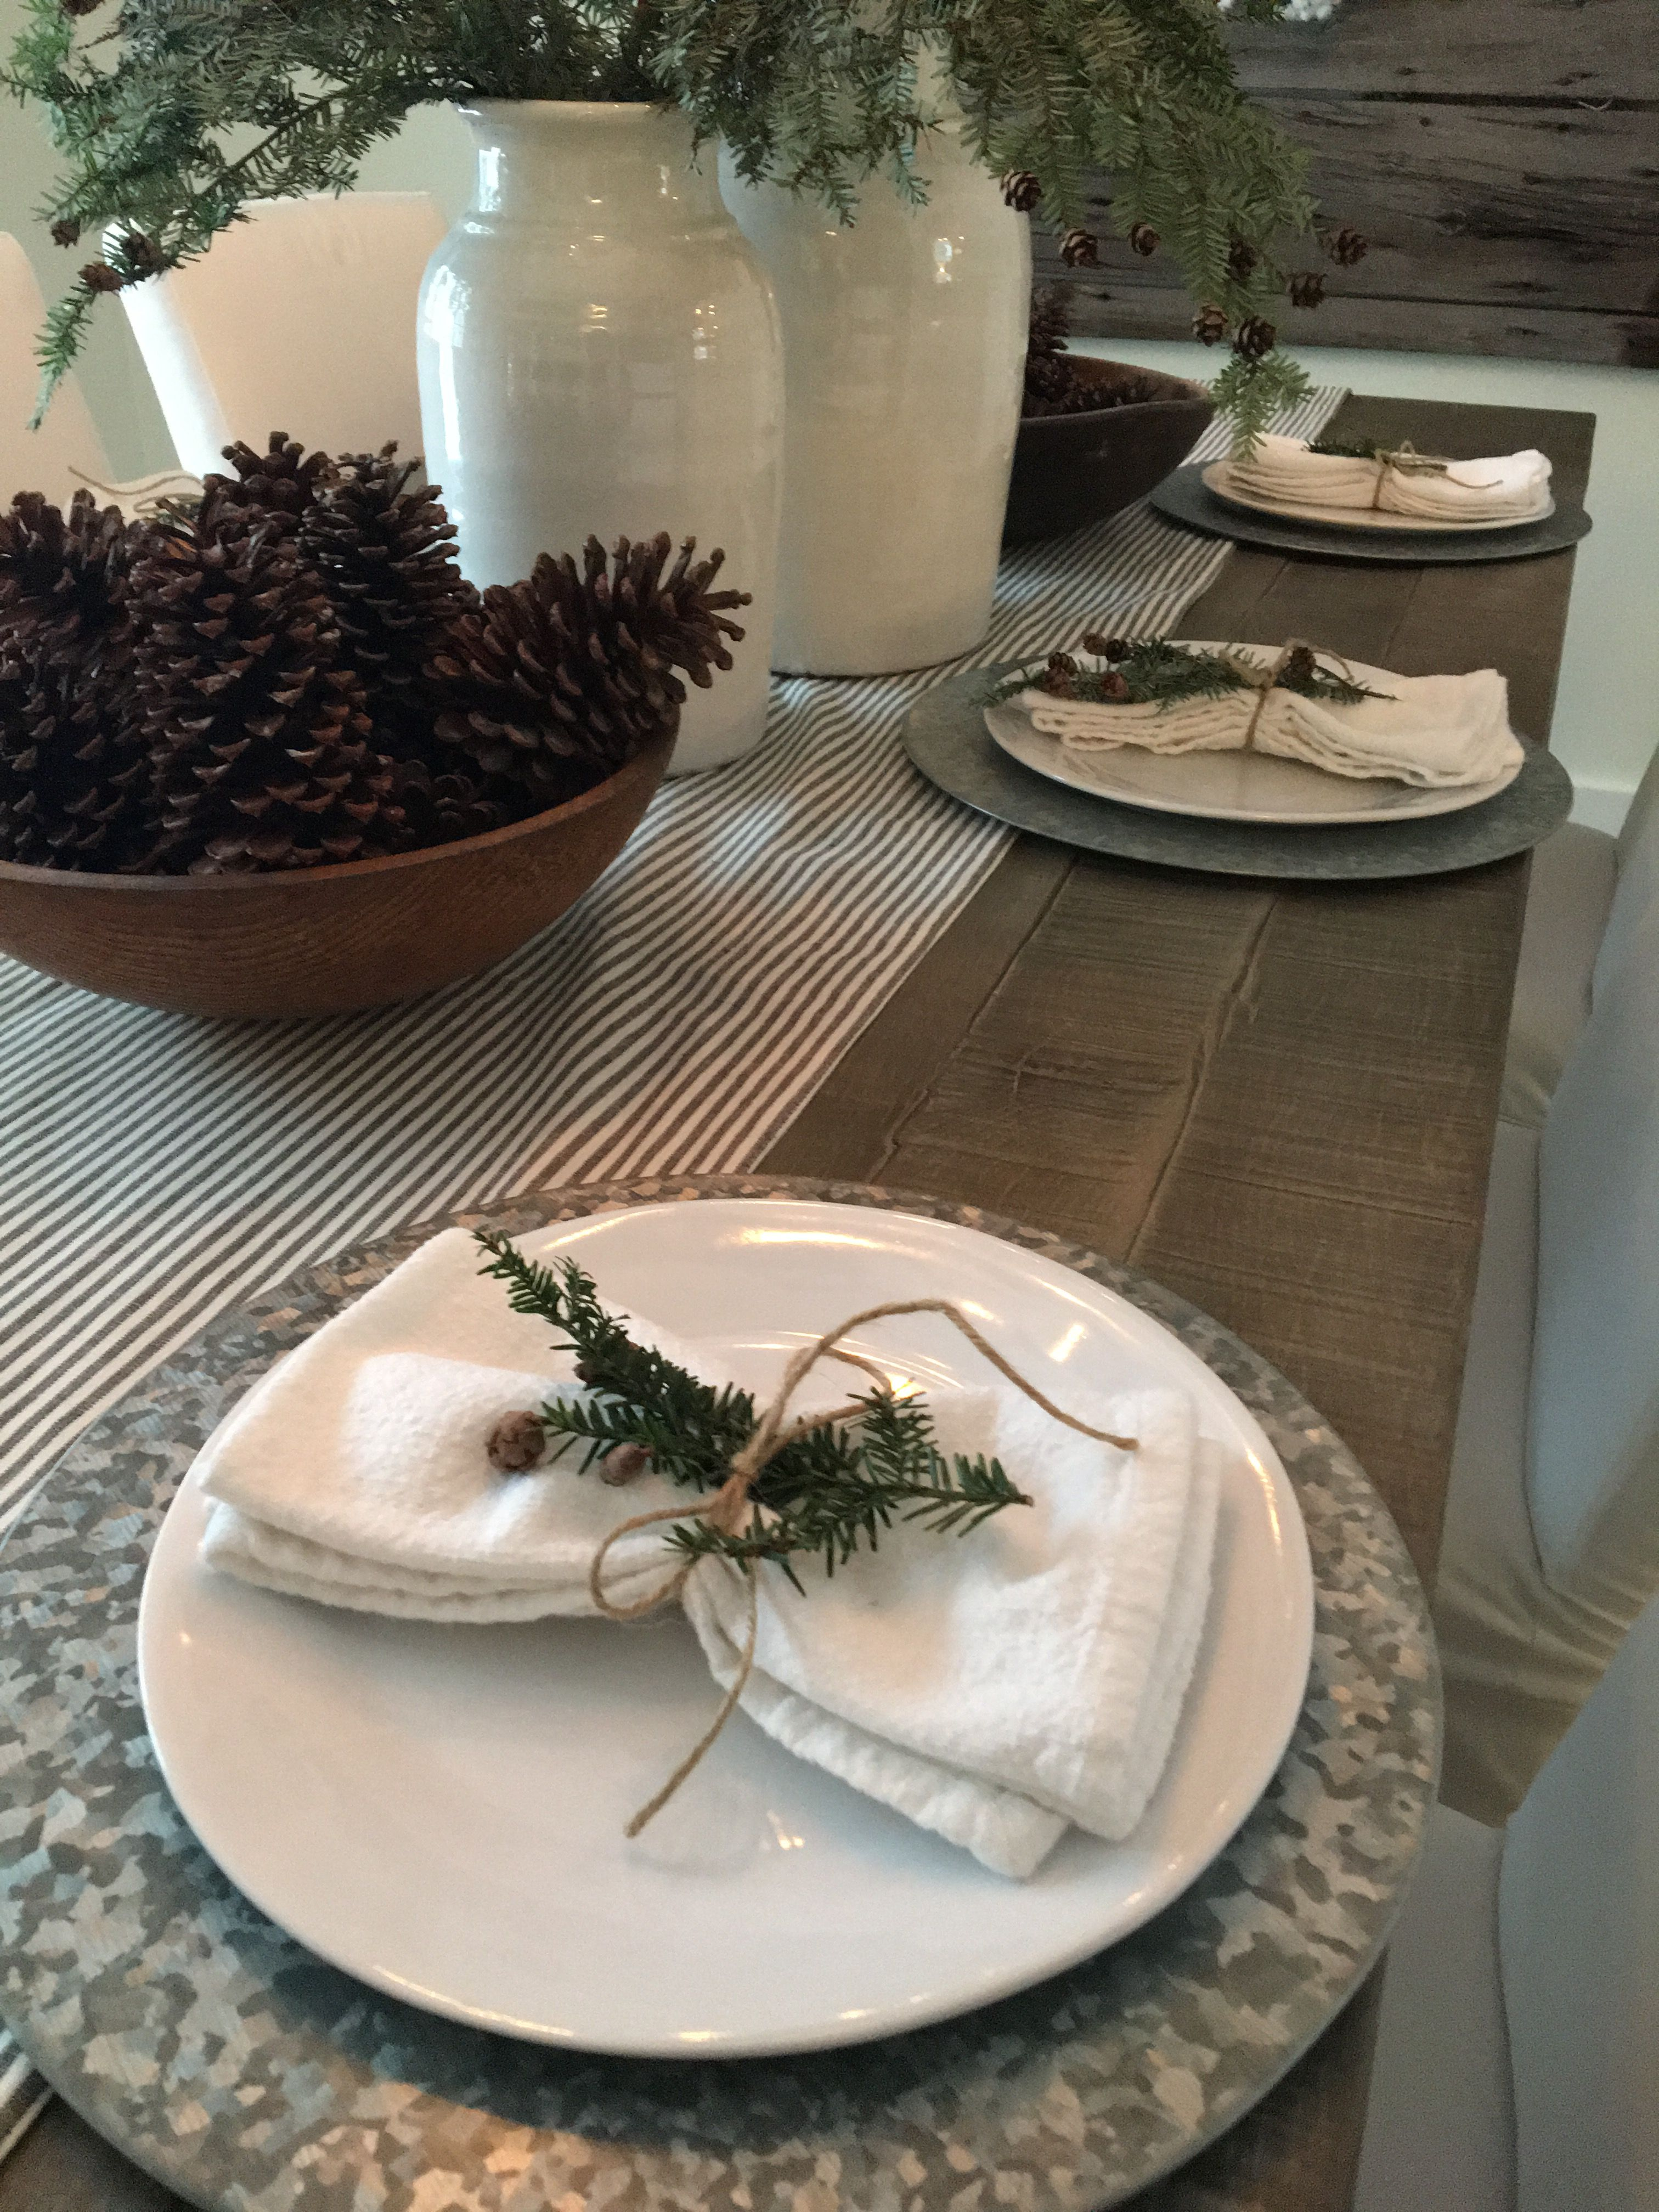 Simple Galvanized Plate Chargers Chargers Plates Table Setting Plate Decor Farmhouse Dining